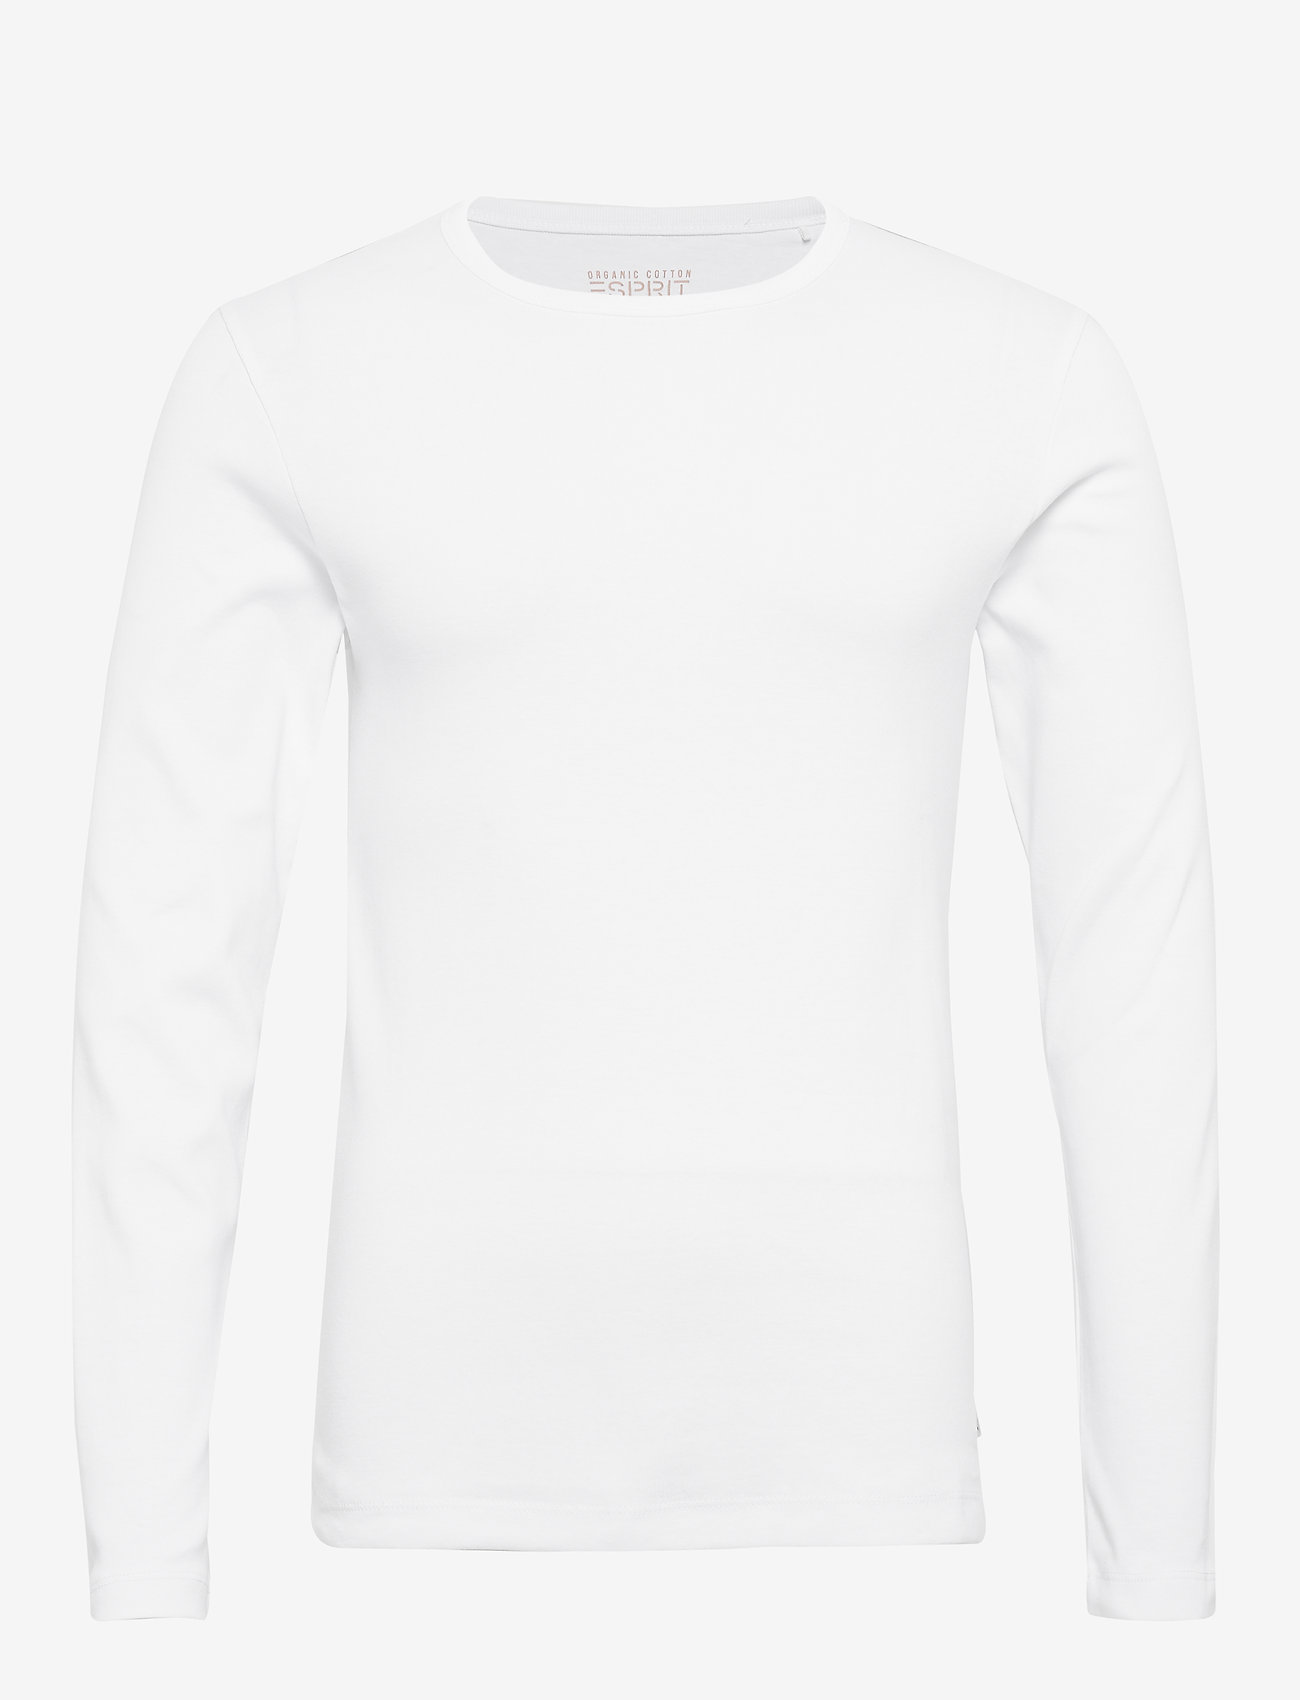 Esprit Casual - T-Shirts - basic t-shirts - white - 0